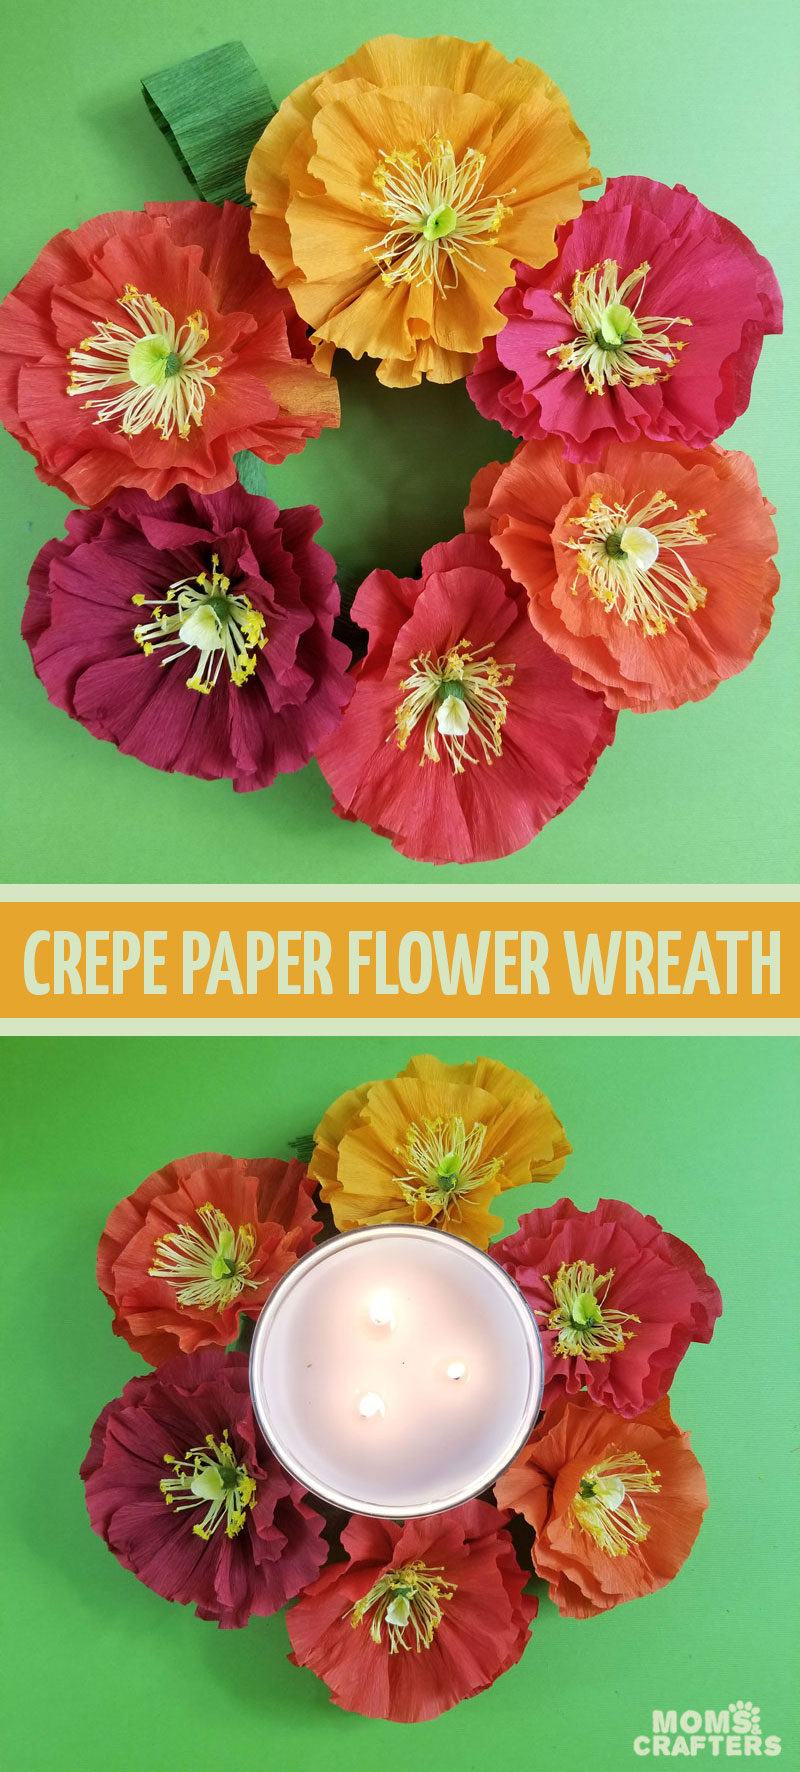 Click to learn how to make your own crepe paper flower wreath and Autumn table decor perfect for Thanksgiving!